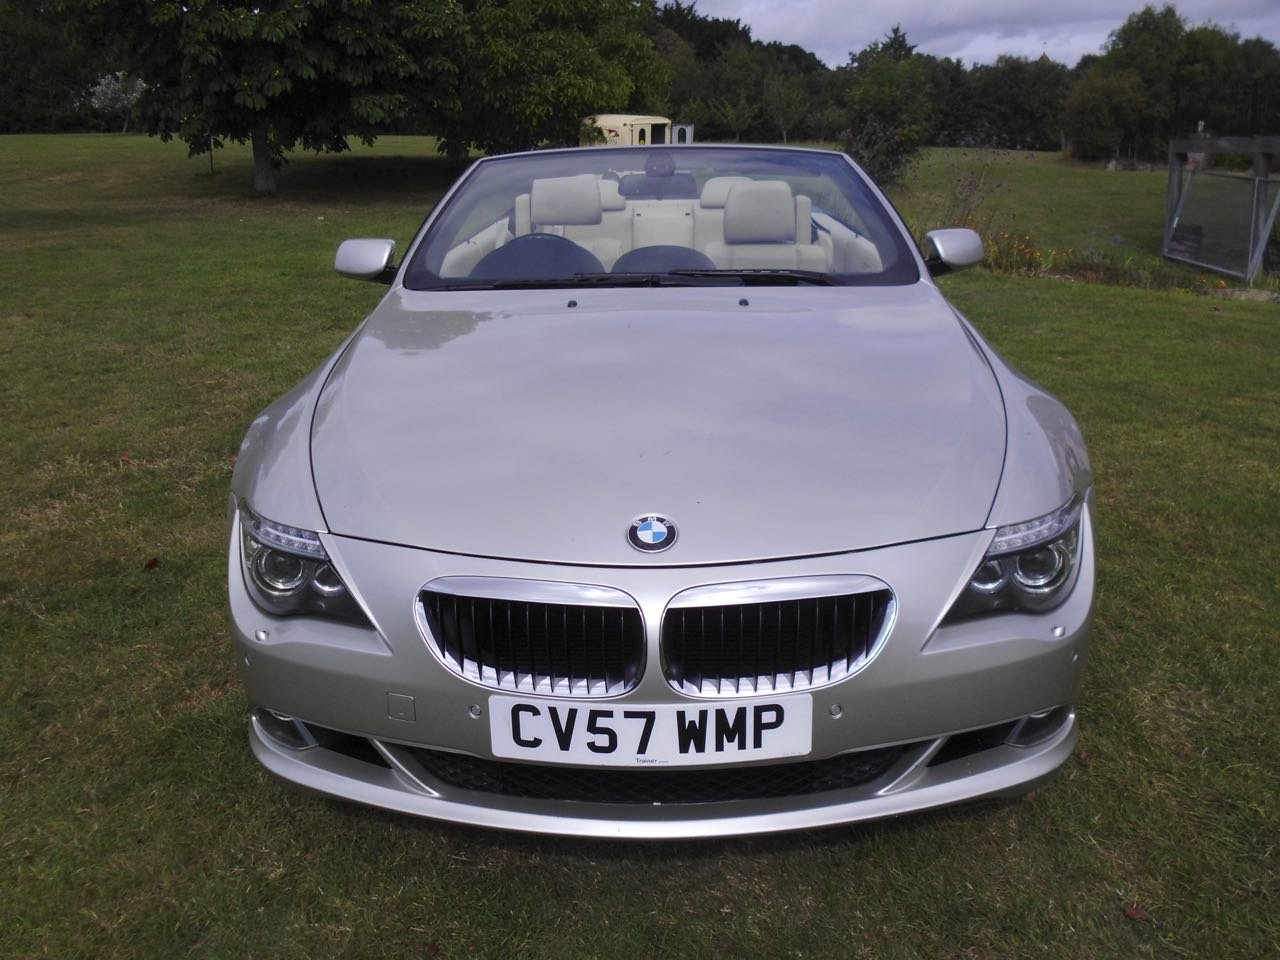 2007 BMW 630i Sport Auto Convertible SOLD (picture 2 of 6)